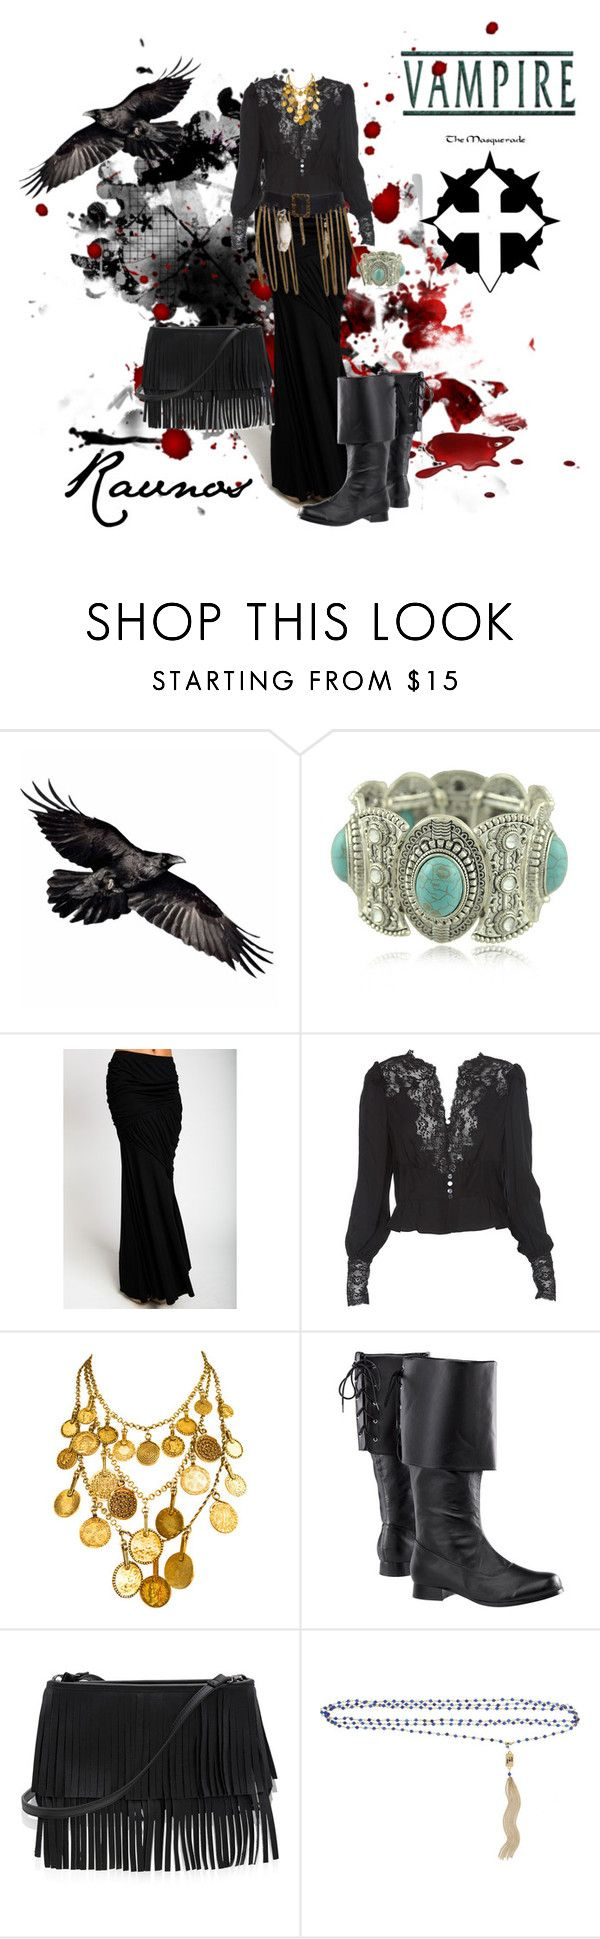 """""""Set #1409 - Vampire: The Masquerade - Clan Ravnos"""" by the-walking-doctor ❤ liked on Polyvore featuring Masquerade, Haute Hippie, Yves Saint Laurent, White House Black Market, Rosantica, Religion Clothing, women's clothing, women, female and woman"""